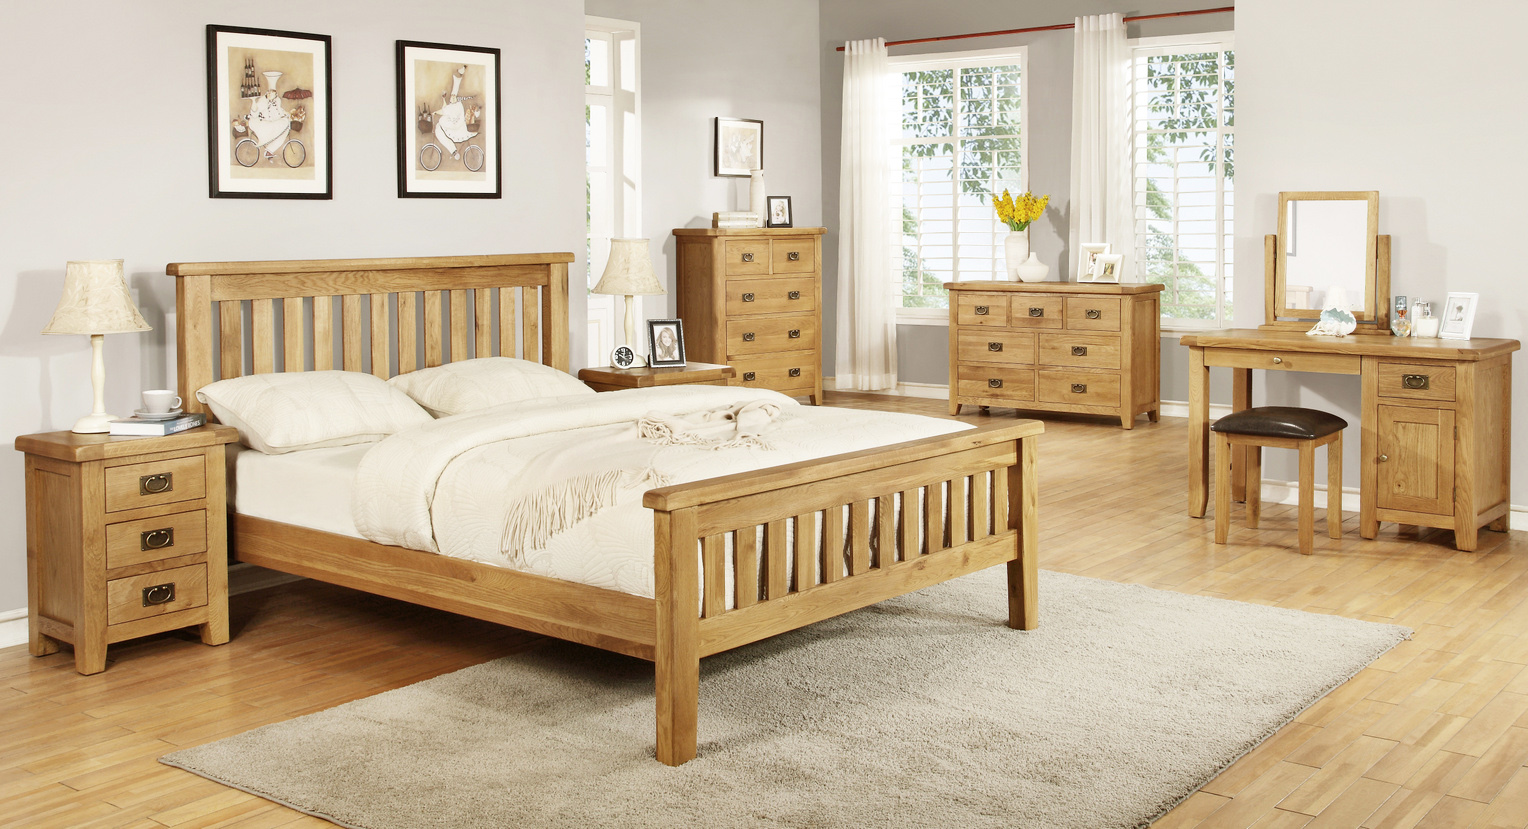 the-best-wooden-furniture-material-awesome-oak-furniture-bedroom-photos-with-teak-bedroom-furniture-sets-with-grey-carpet-on-the-hardwood-flooring-design